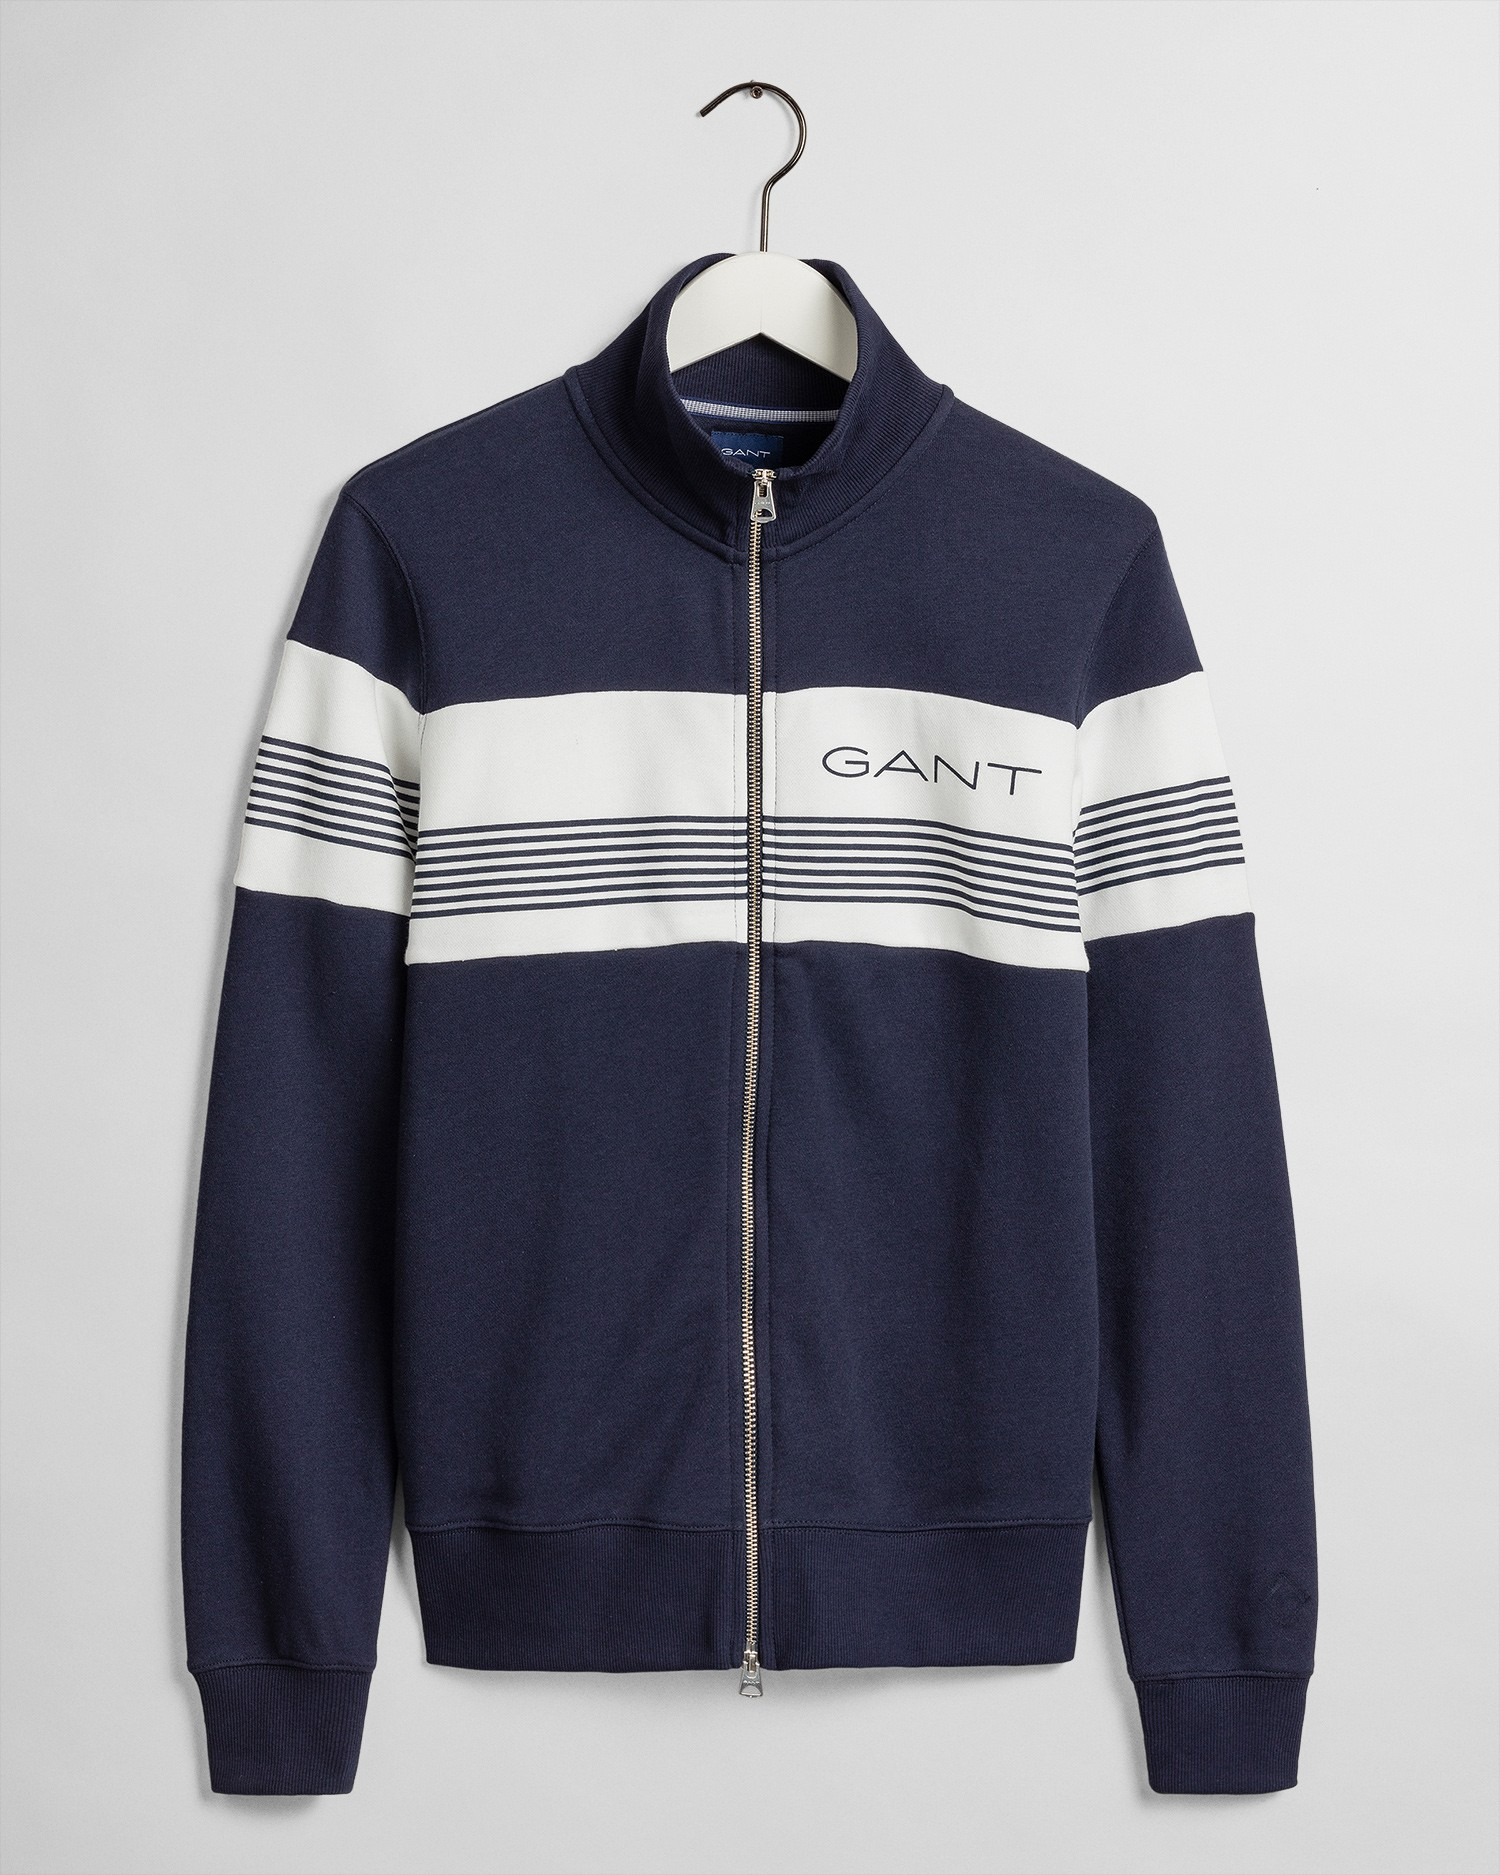 GANT Men's Sweatshirt - 2048002